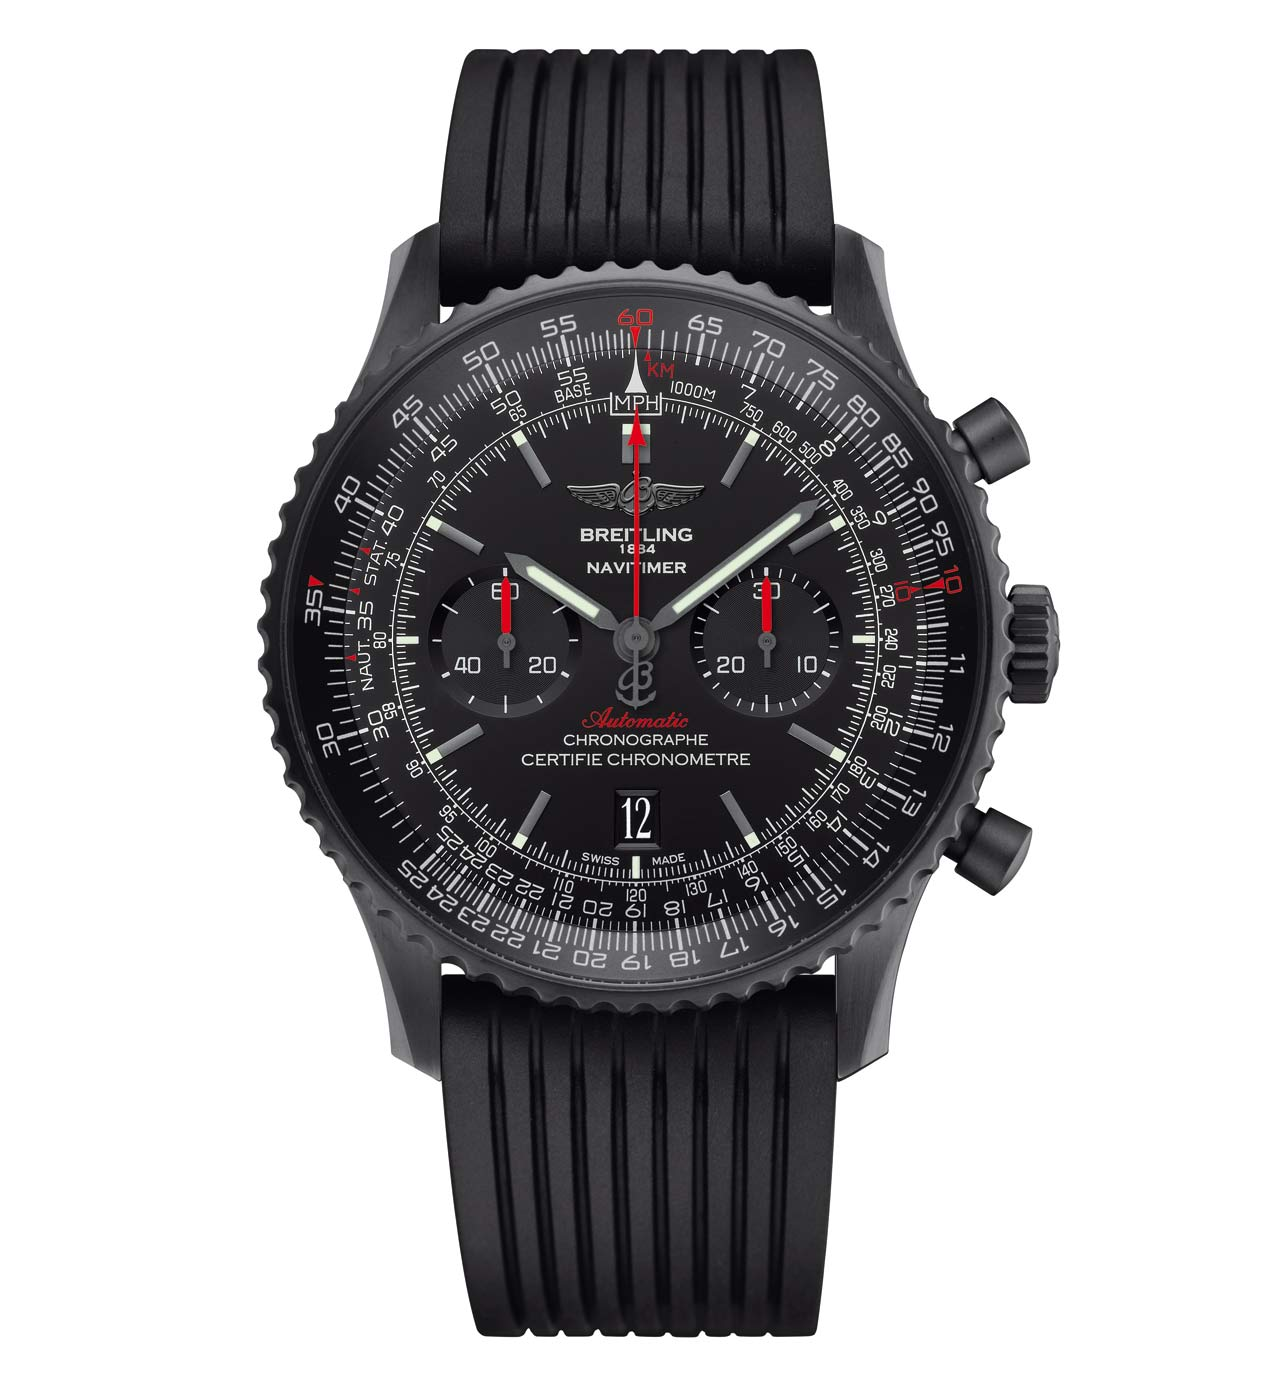 2215dfe4bfc ... the Breitling Navitimer 46 Blacksteel is water resistant to 30 metres    100 feet and has a retail price of Euro 8